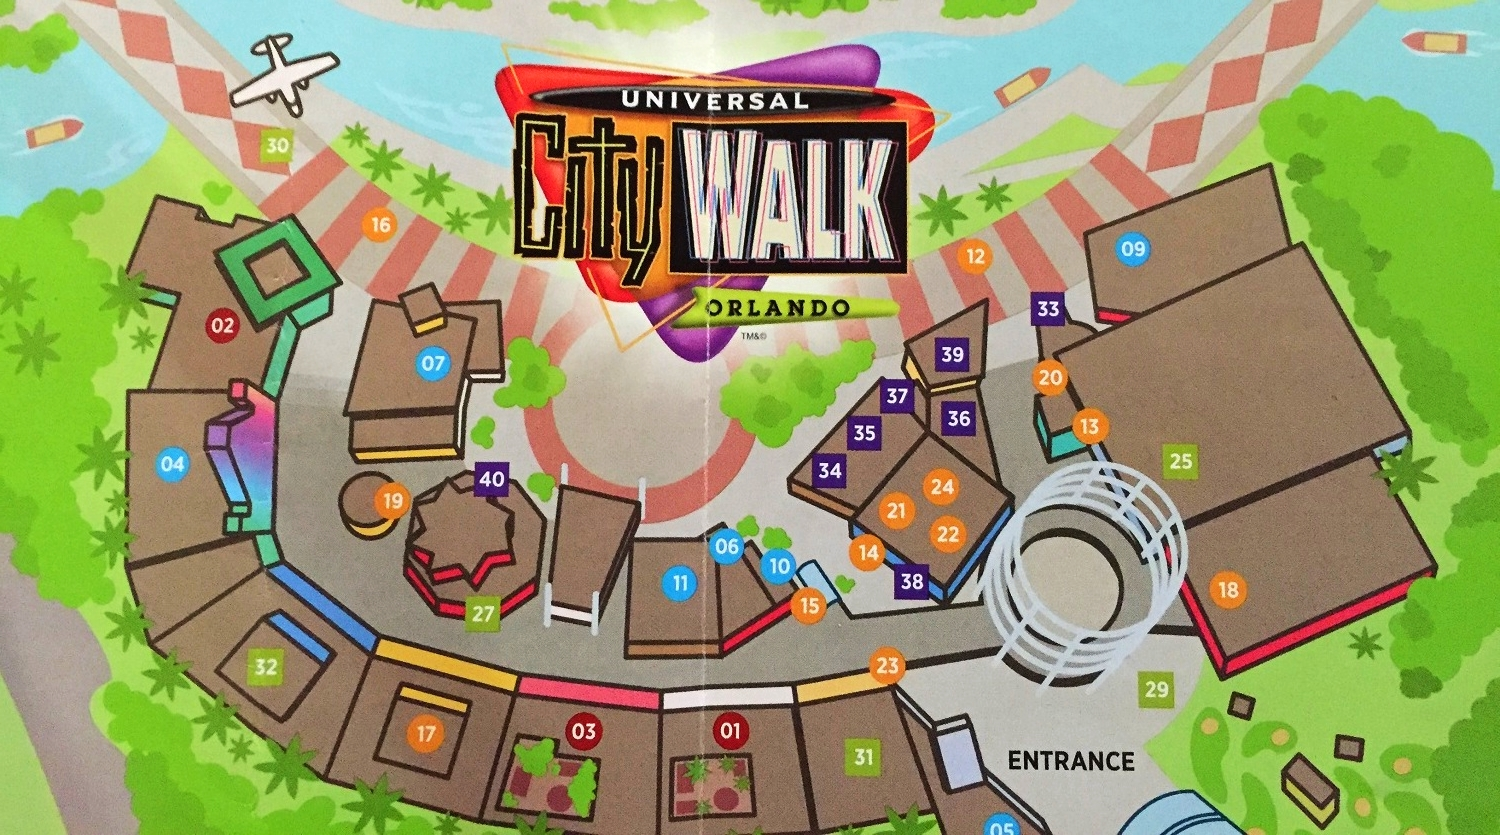 Look for number 04 on this Universal CityWalk map to find Antojitos.